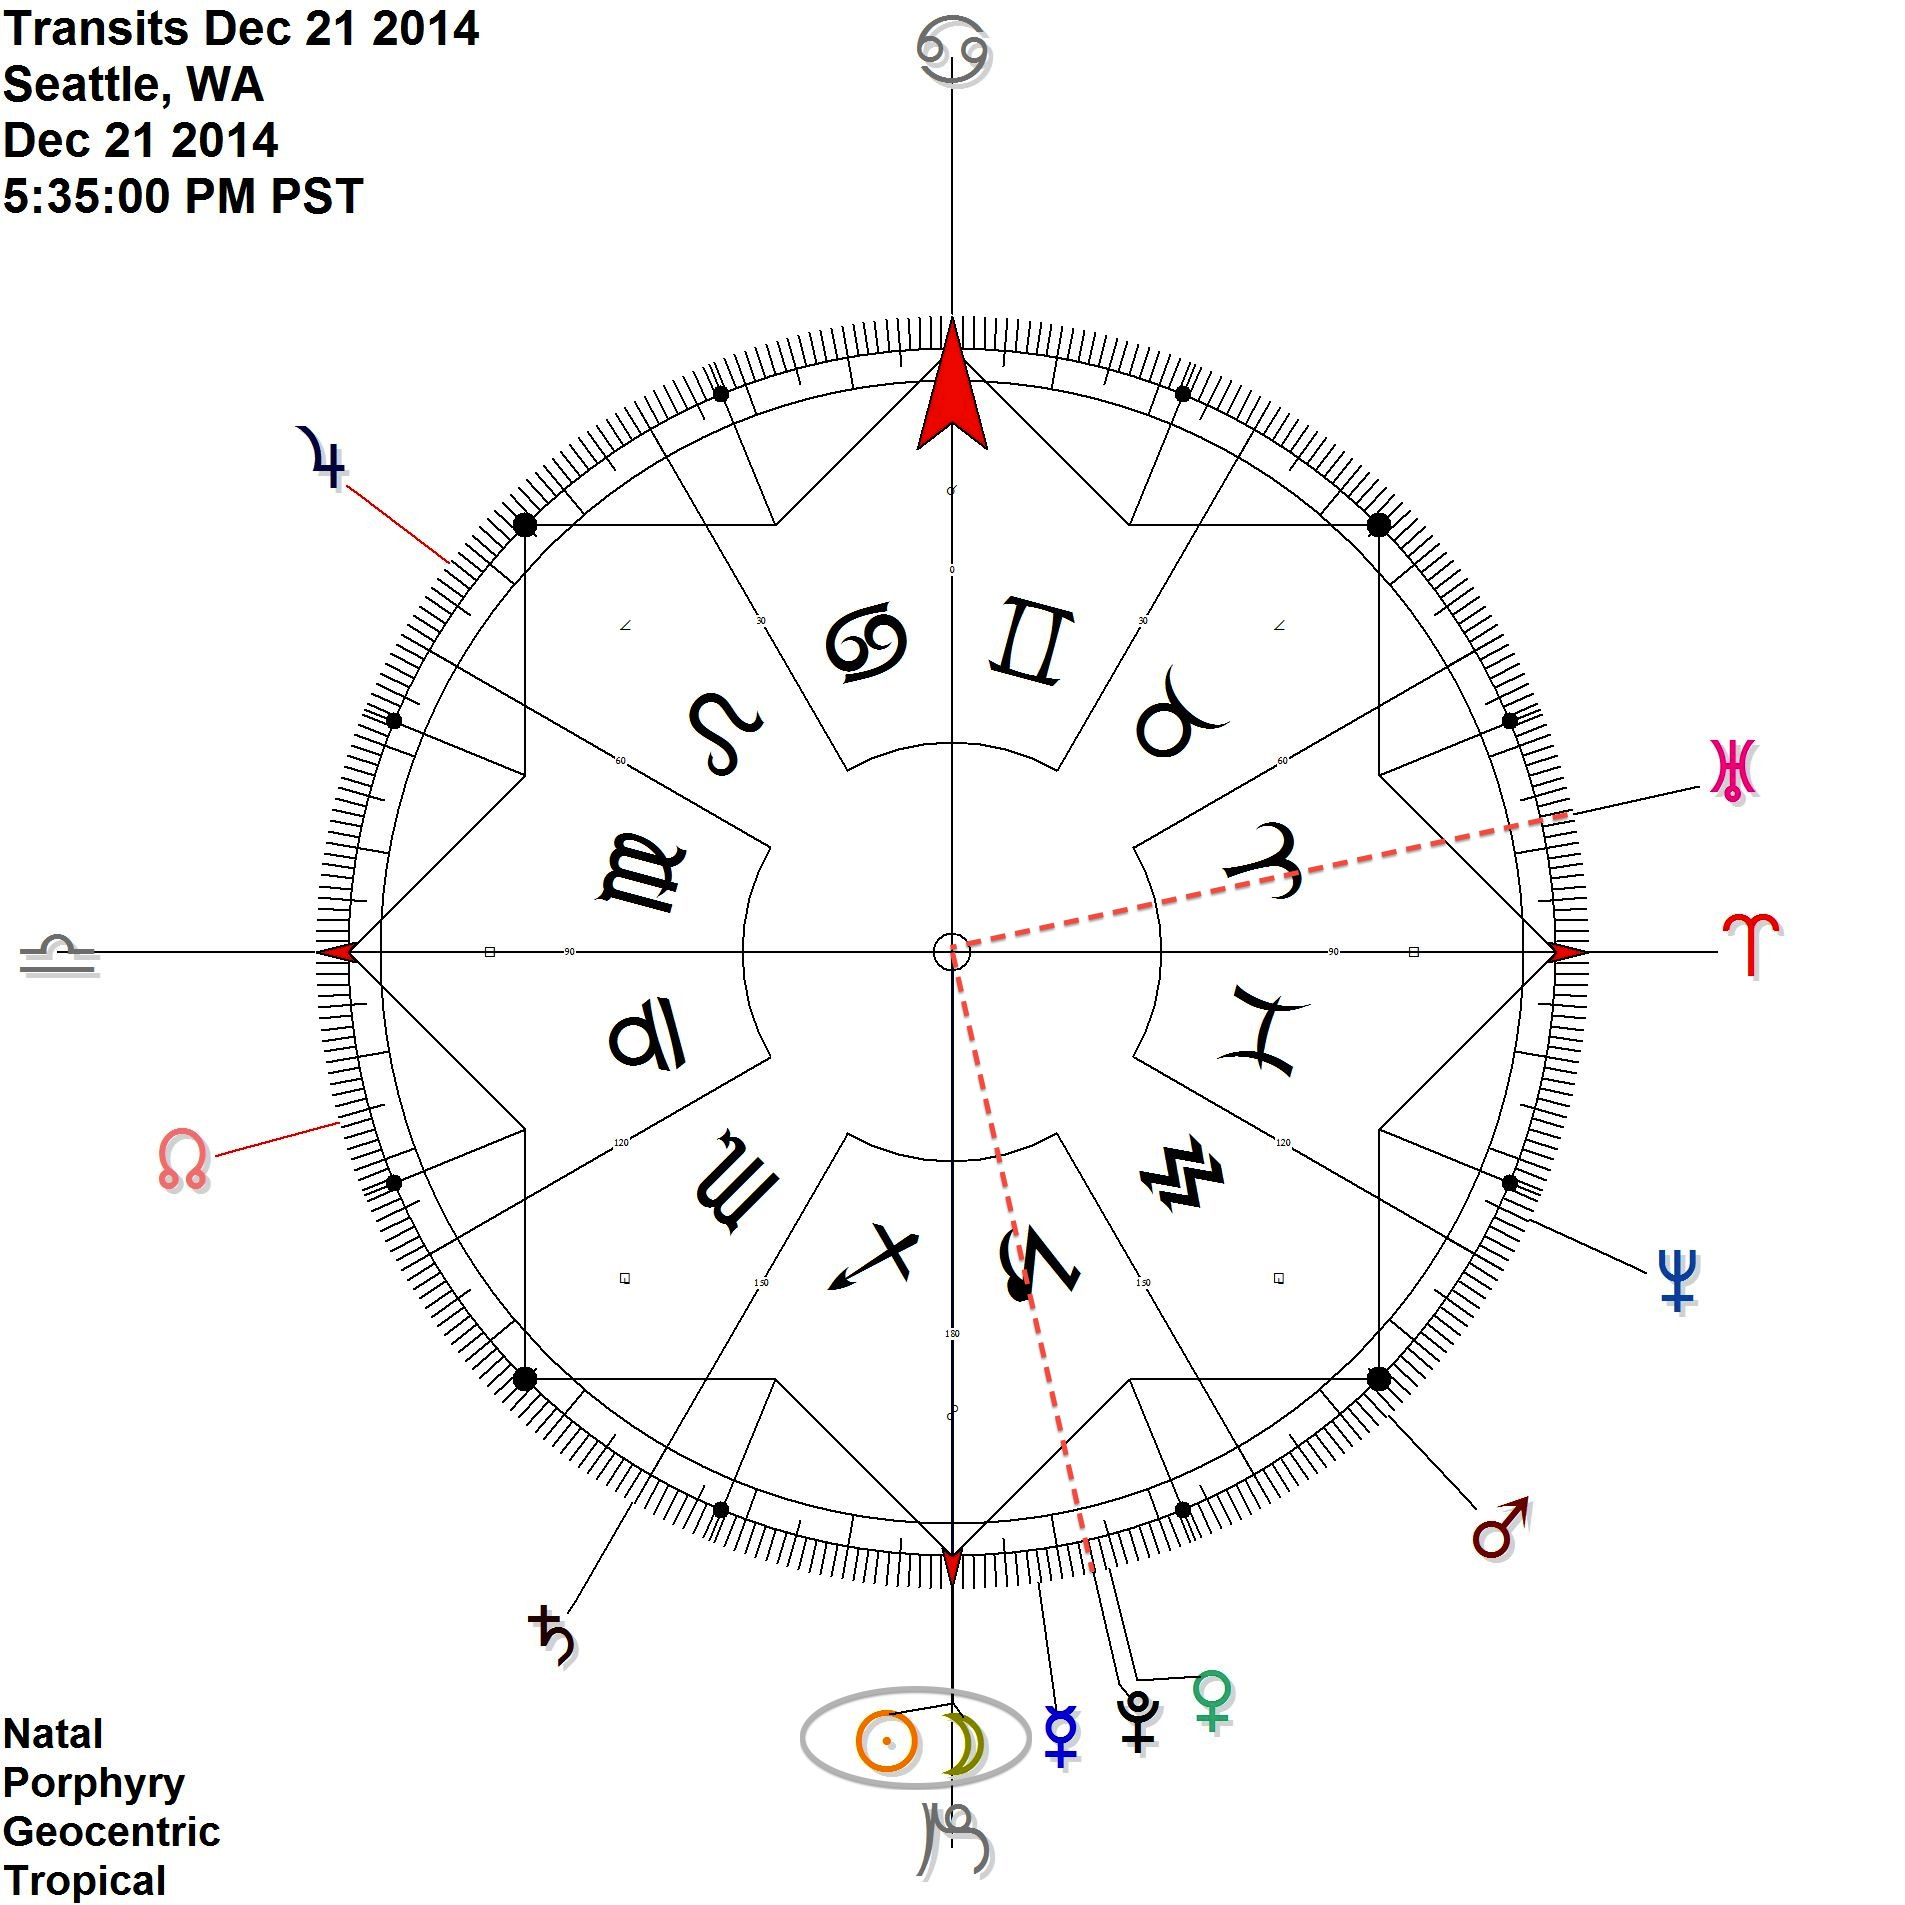 New Moon on the cardinal axis (0Capricorn) at the time ofthe Solstice. Meanwhile, Uranus stations direct in partile (exact) square to Pluto.